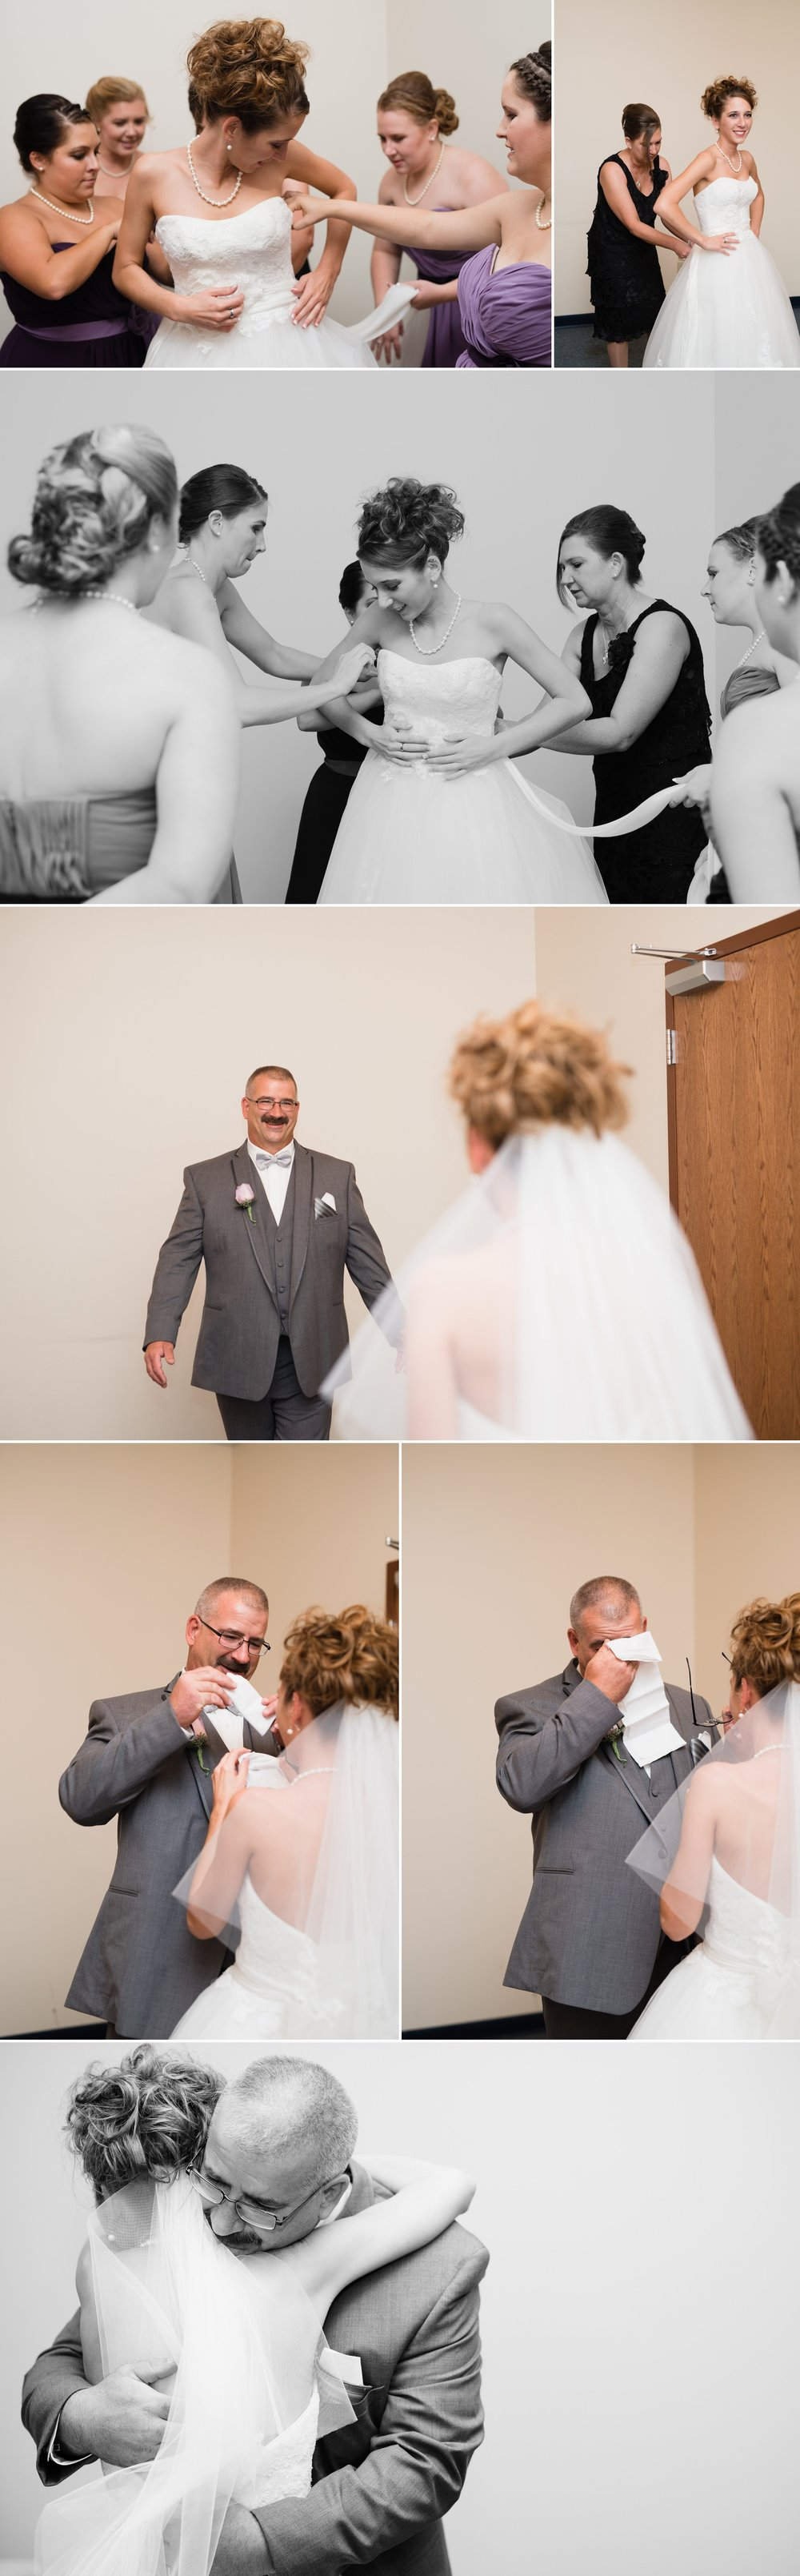 Ashleigh Saylor Photography Canton Ohio Wedding 1.jpg